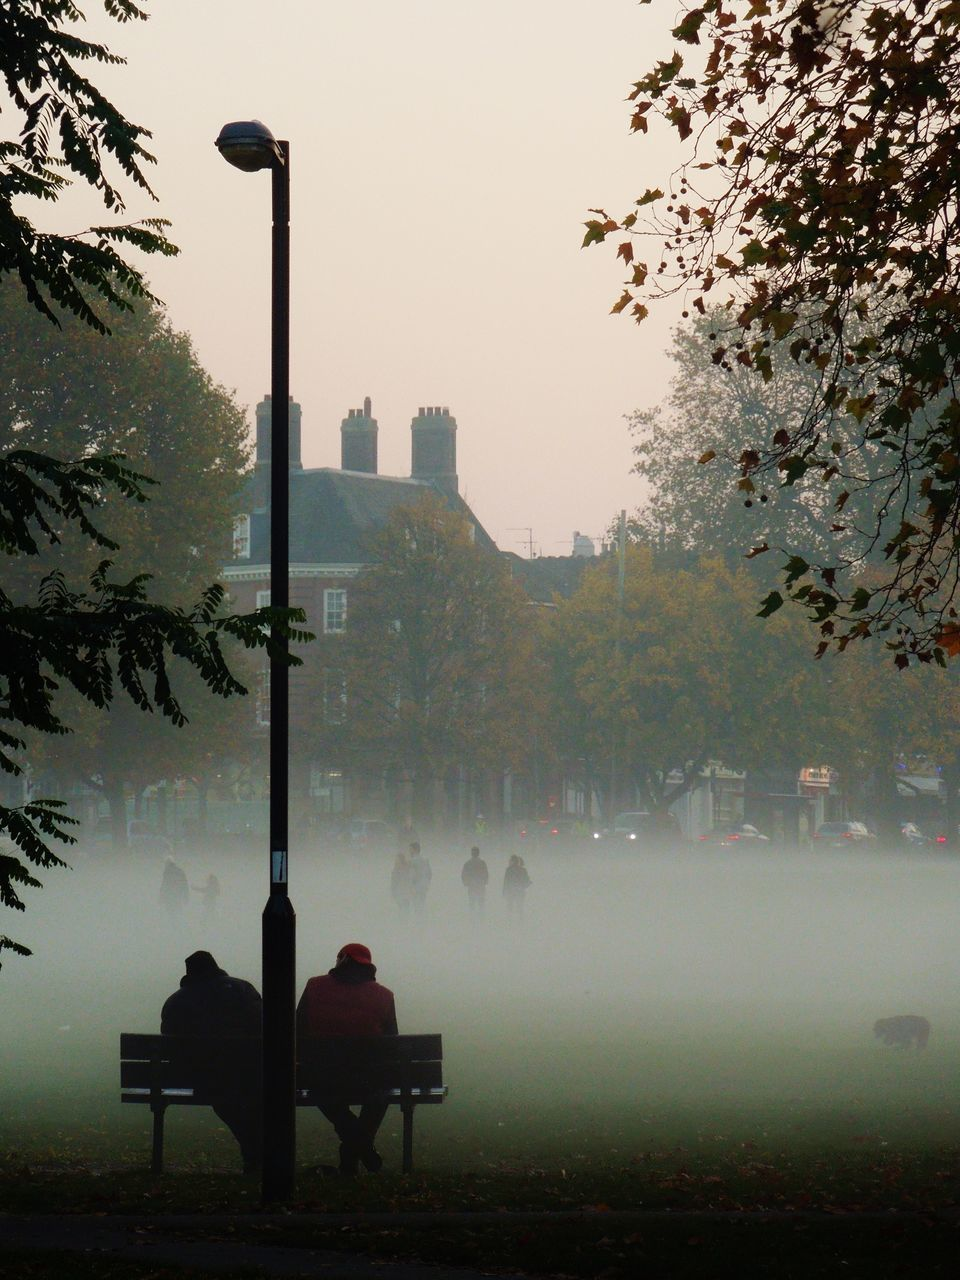 People Sitting On Bench At Park In City During Foggy Weather